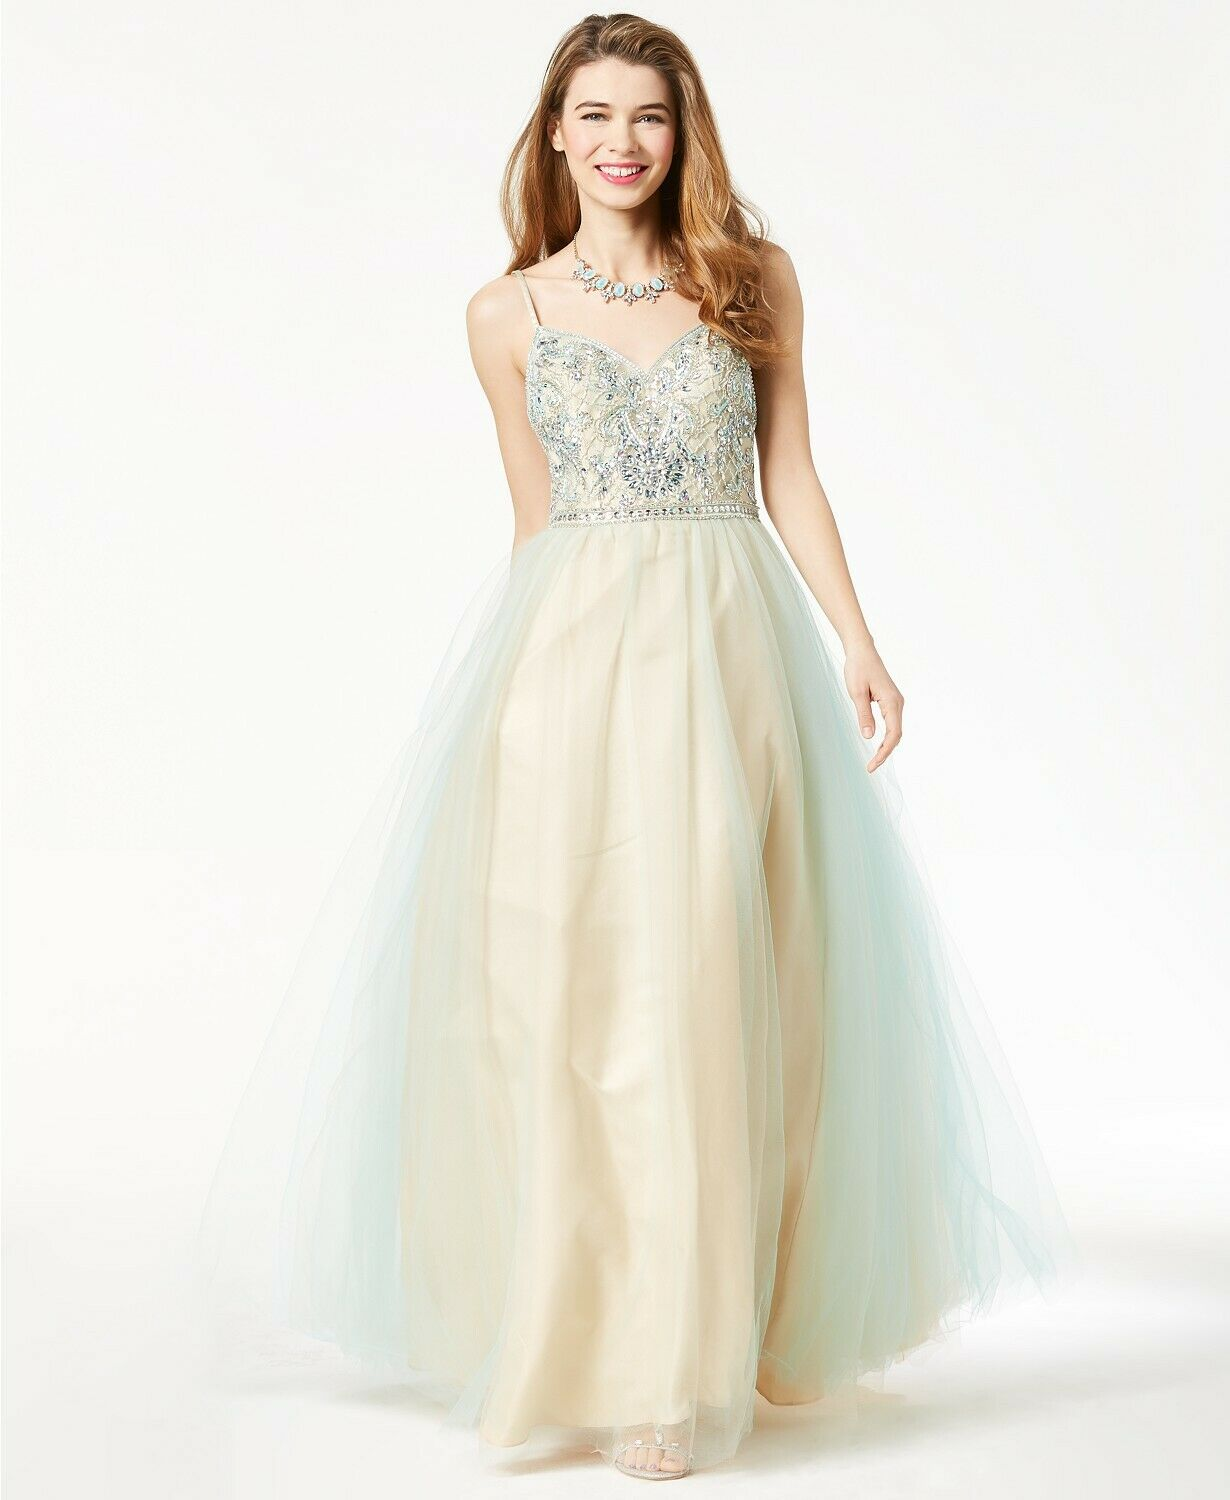 250 SAY YES TO THE THE THE PROM blueE gold EMBELLISHED TULLE GOWN DRESS JUNIOR'S 13 14 db1cb2